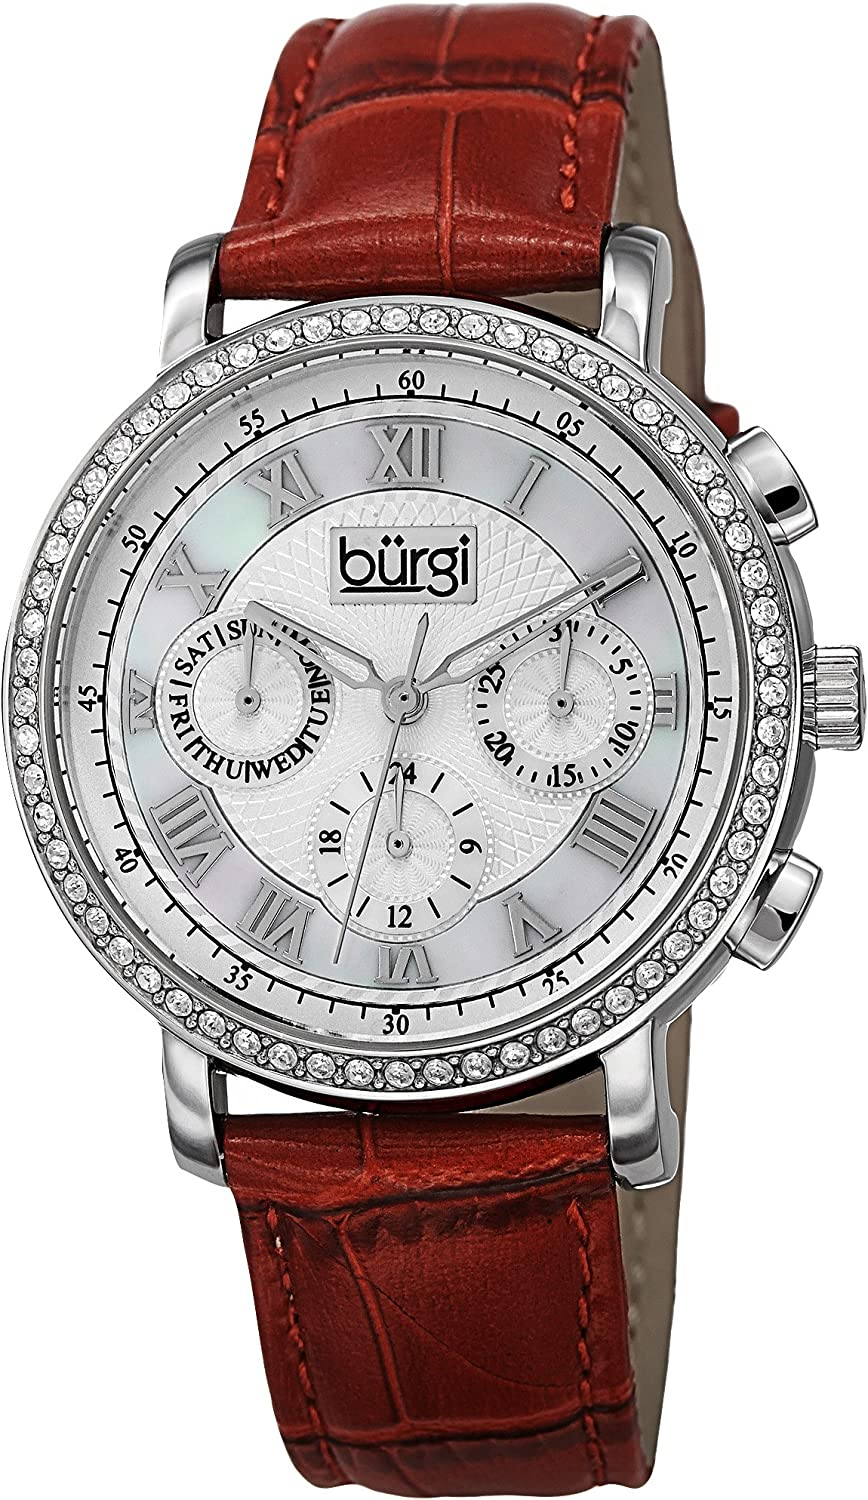 Burgi Women s Malfunction Crystal Watch – 3 Subdials for Day, Date and GMT – Sparkling Crystal on Bezel On Embossed Alligator Pattern Leather – BUR087